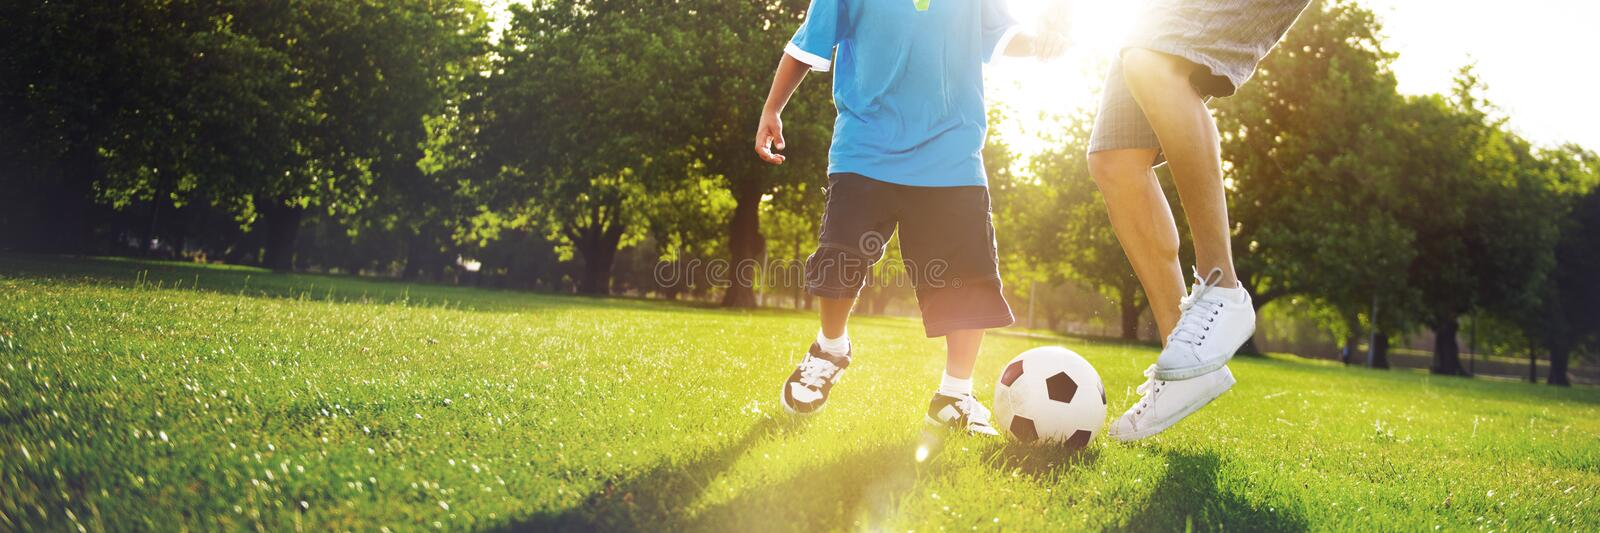 Little Boy Playing Soccer With His Father Concept stock photography